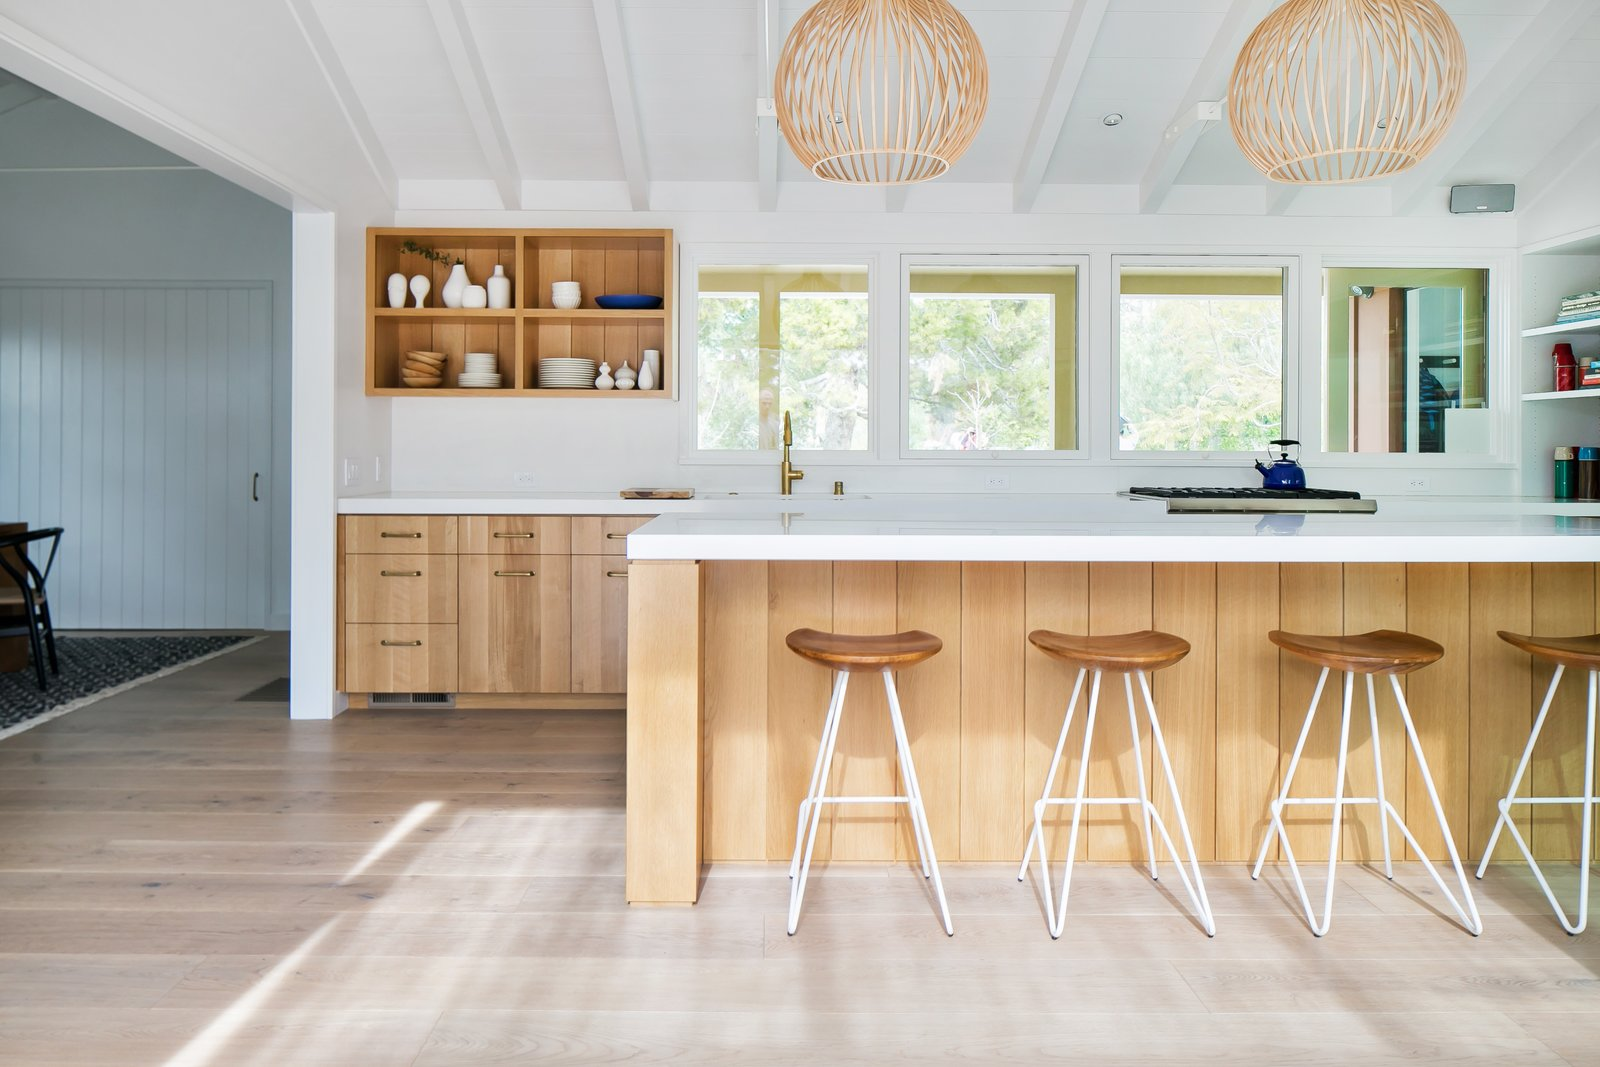 Photo 2 of 10 in Dwell's Top 10 Kitchens of 2017 from A ... on little house kitchen designs, ranch style design interior, ranch garden designs, ranch home bedrooms, ranch kitchen remodel, ranch home wood, new construction kitchen designs, summer cottage kitchen designs, ranch home bathroom ideas, ranch home stairs, stone farmhouse kitchen designs, double wide kitchen designs, fixer upper kitchen designs, chef kitchen designs, ranch home fireplaces, ranch home lighting, ranch renovation designs, ranch architectural designs, rambler kitchen designs, ranch home bathroom vanities,